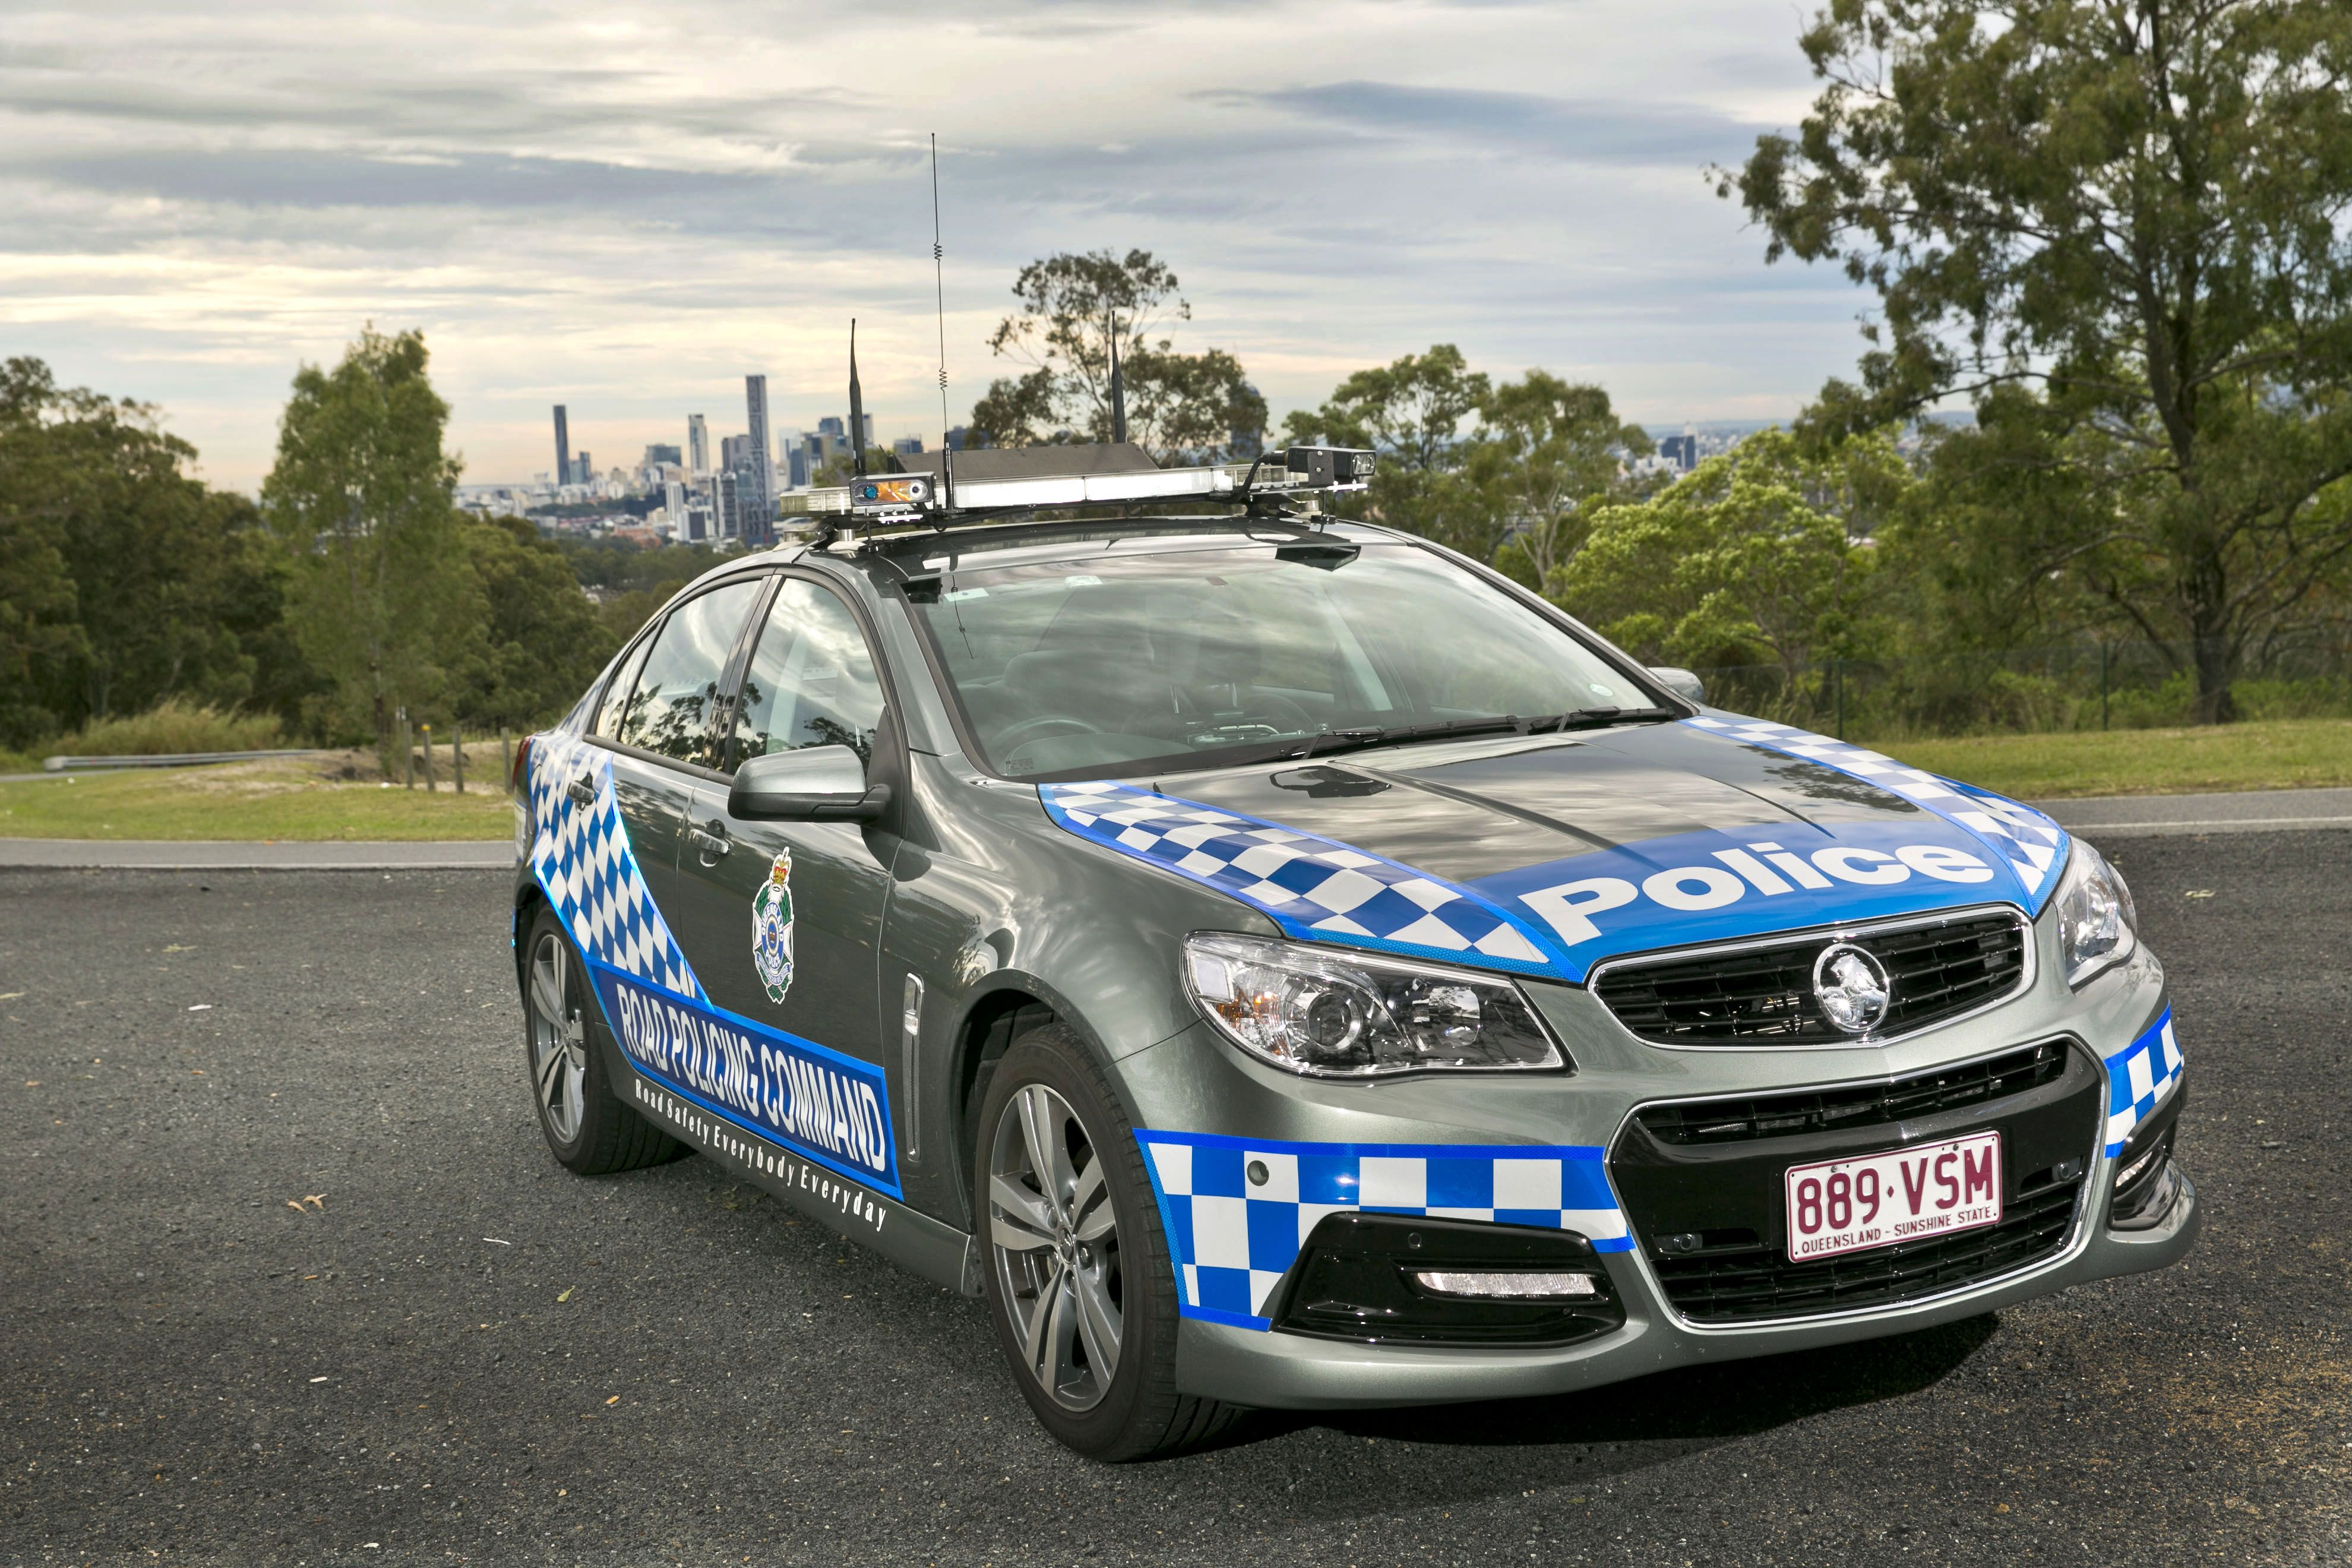 Pin by Judith Mary on Police, Police Cars | Vehicles, Police